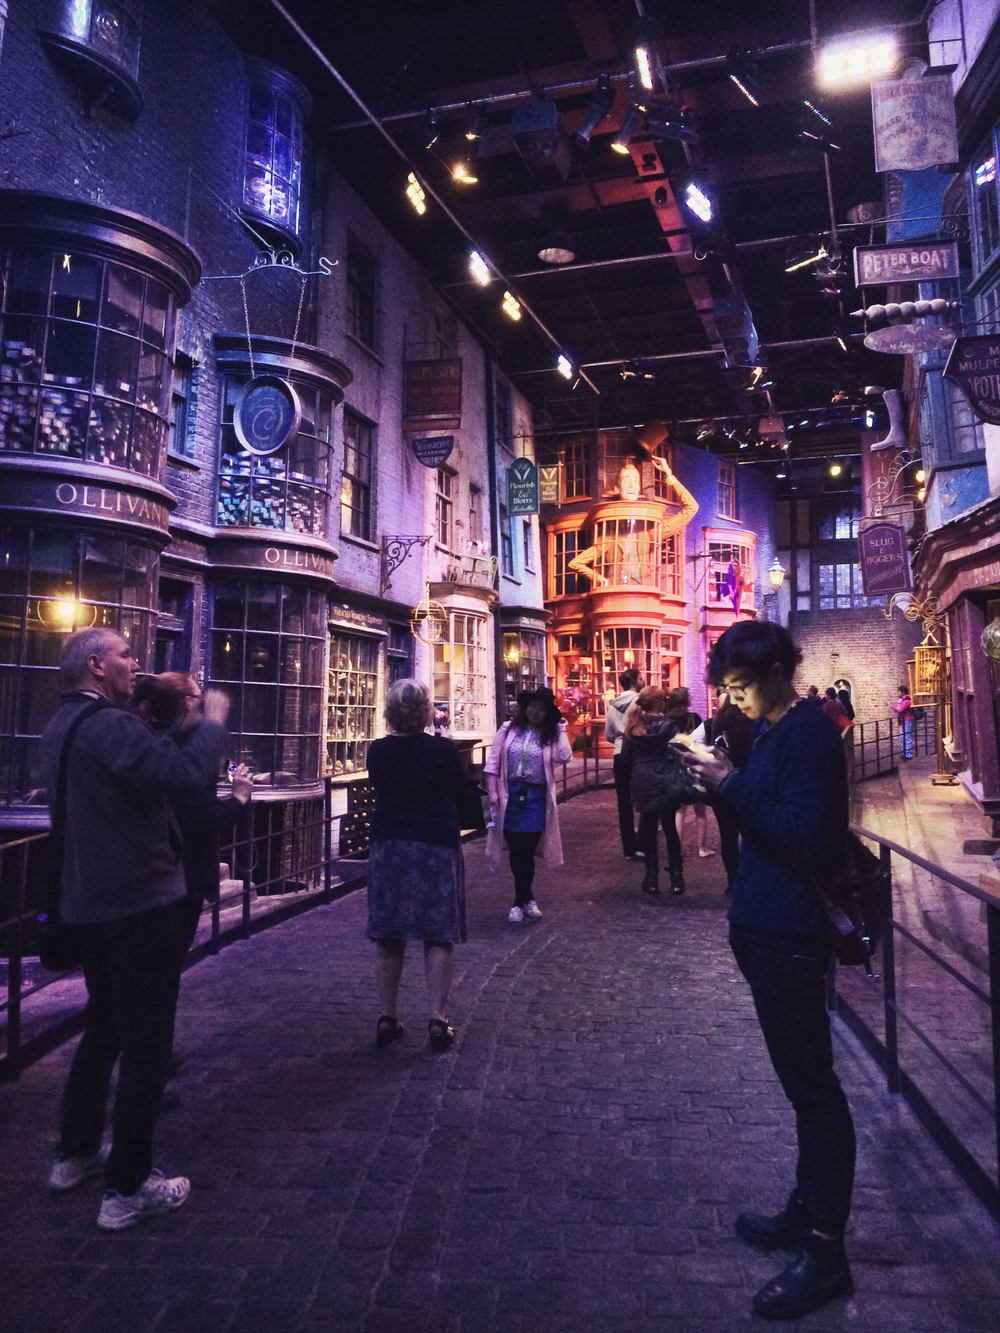 It was a particularly memorable moment getting to walk Diagon Alley.